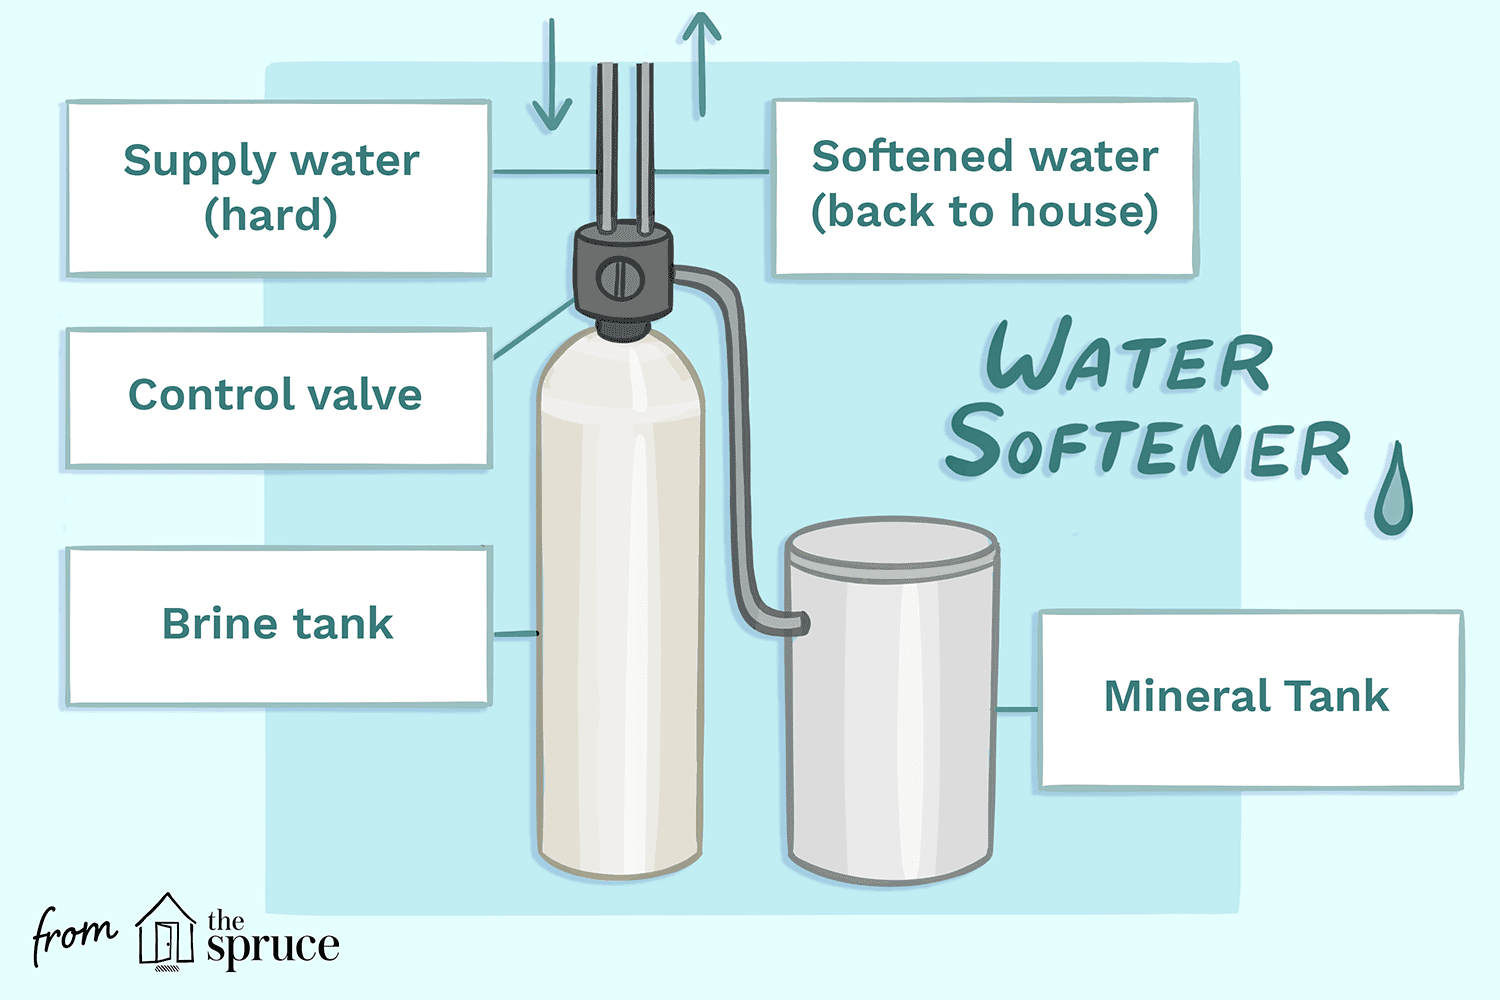 Illustration of a water softener and how it works